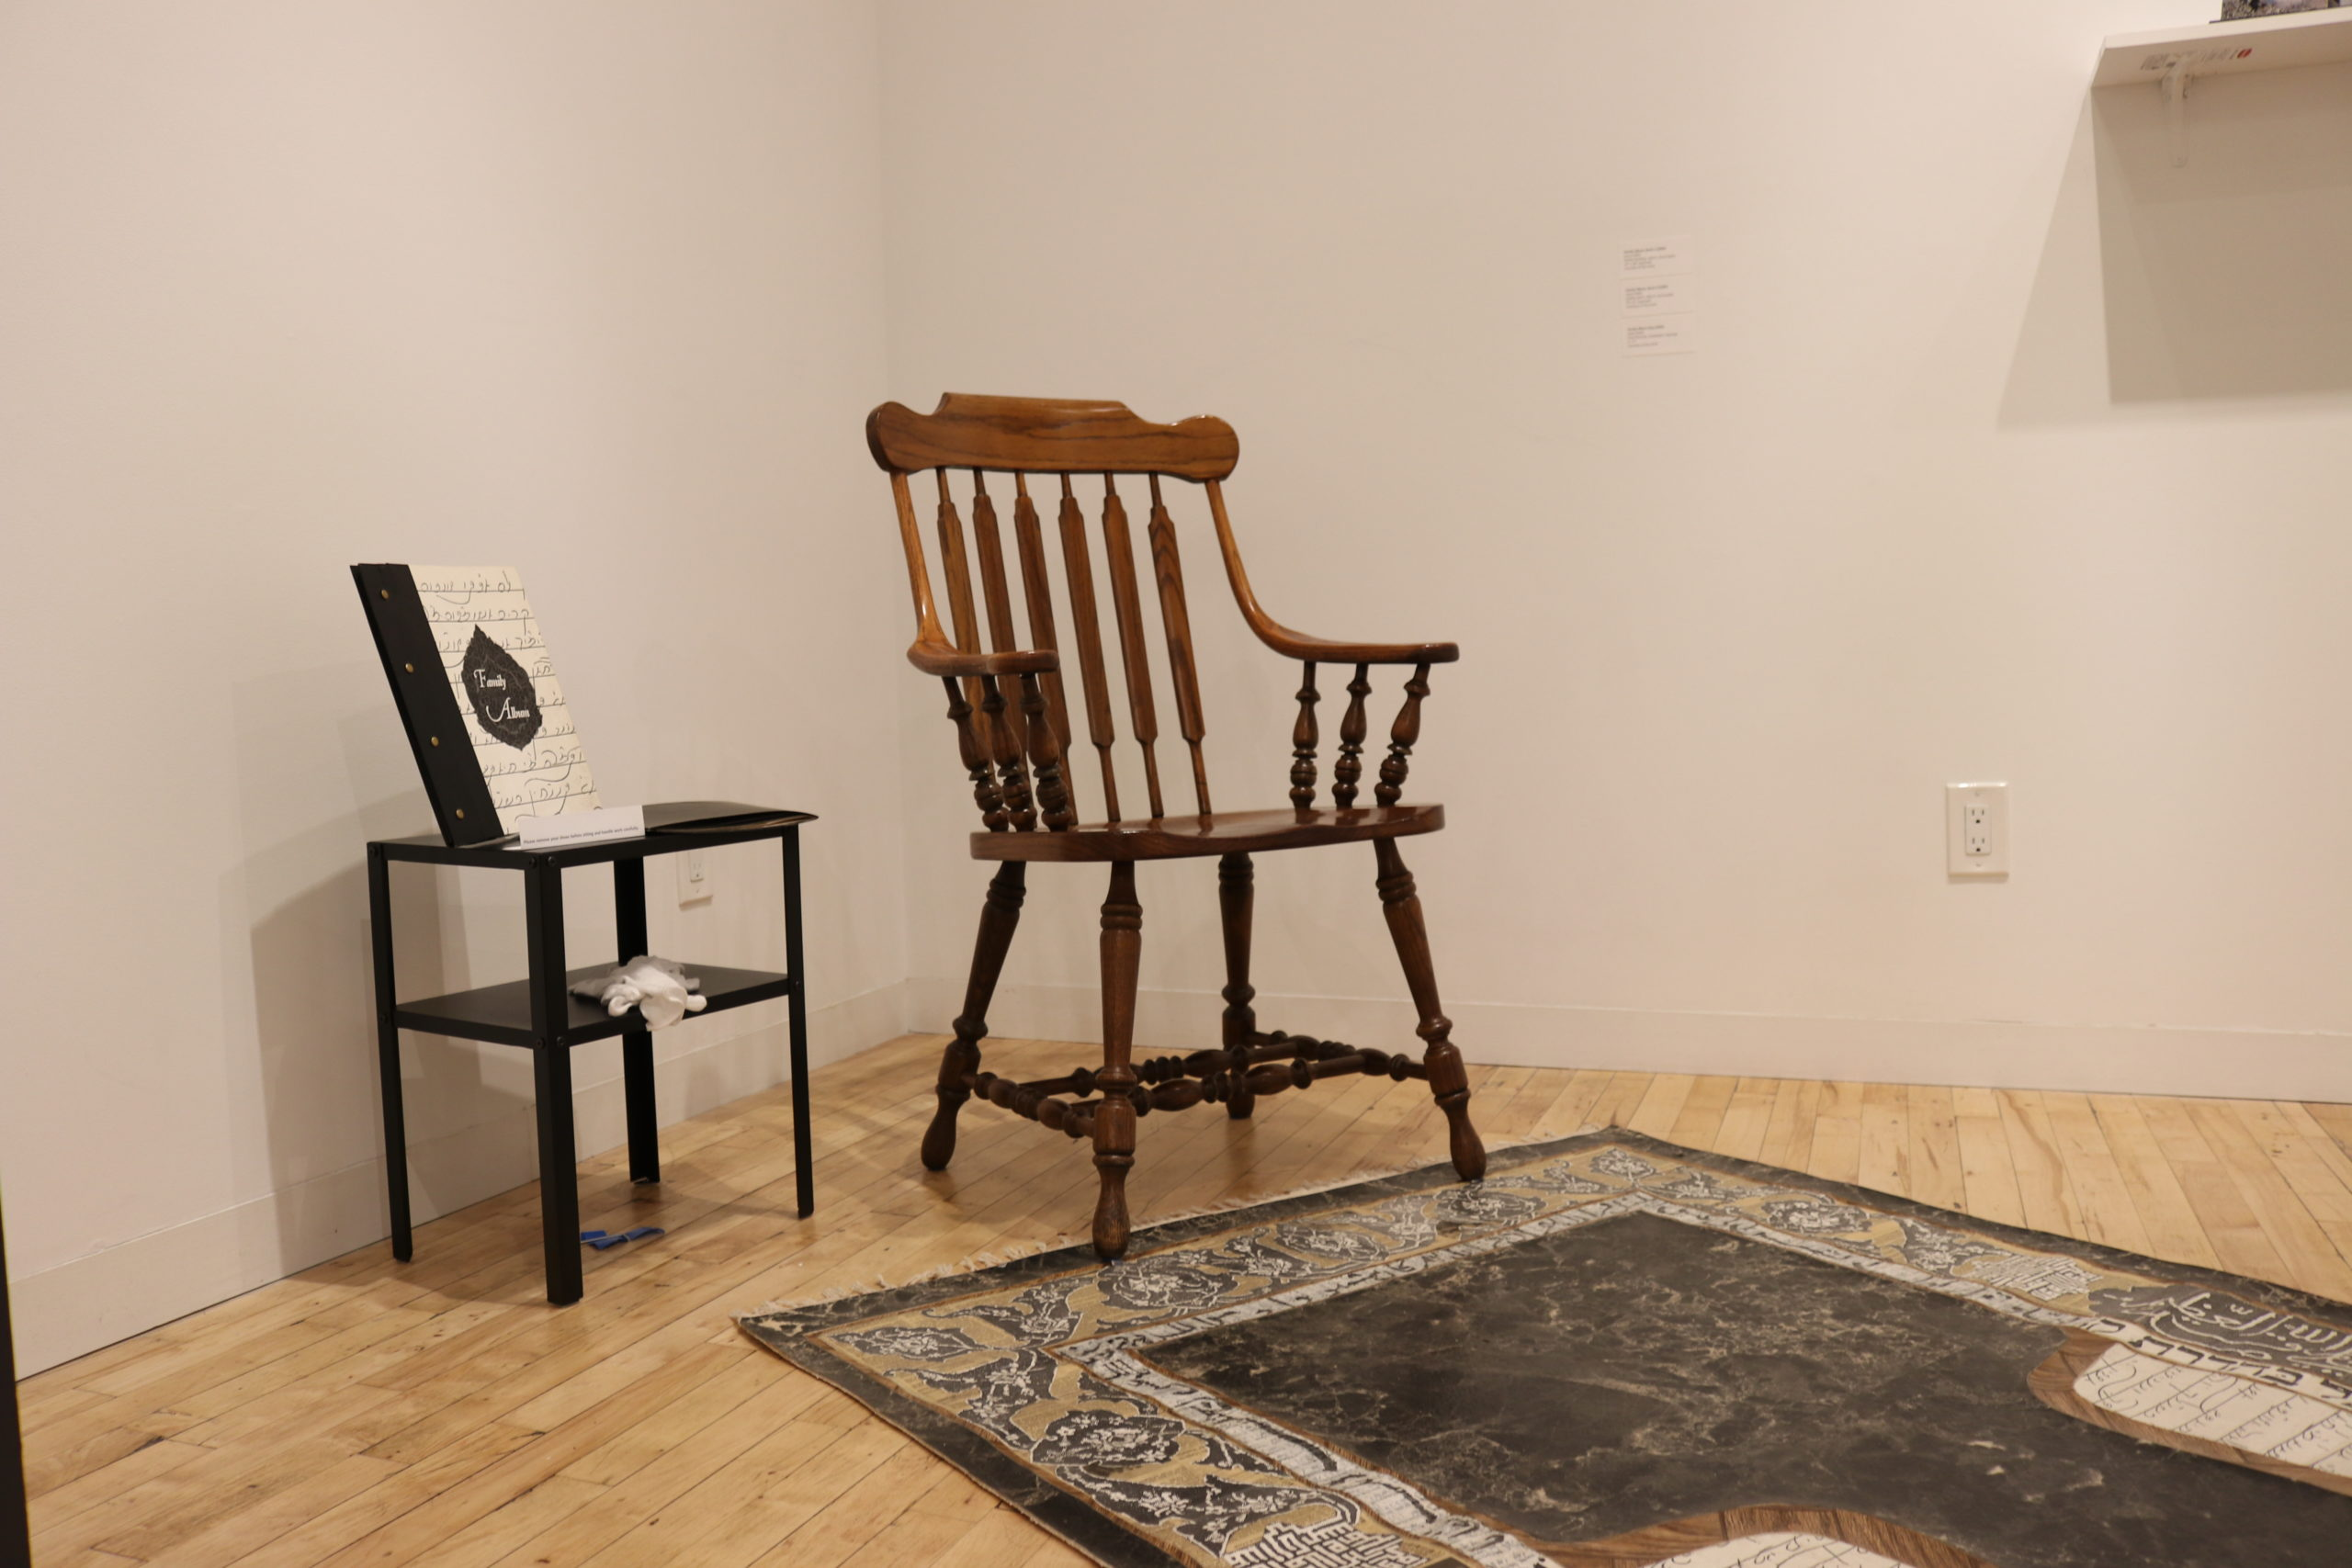 a chair and night stand sit in the corner of the gallery with a rug-like artwork on the floor in front of them